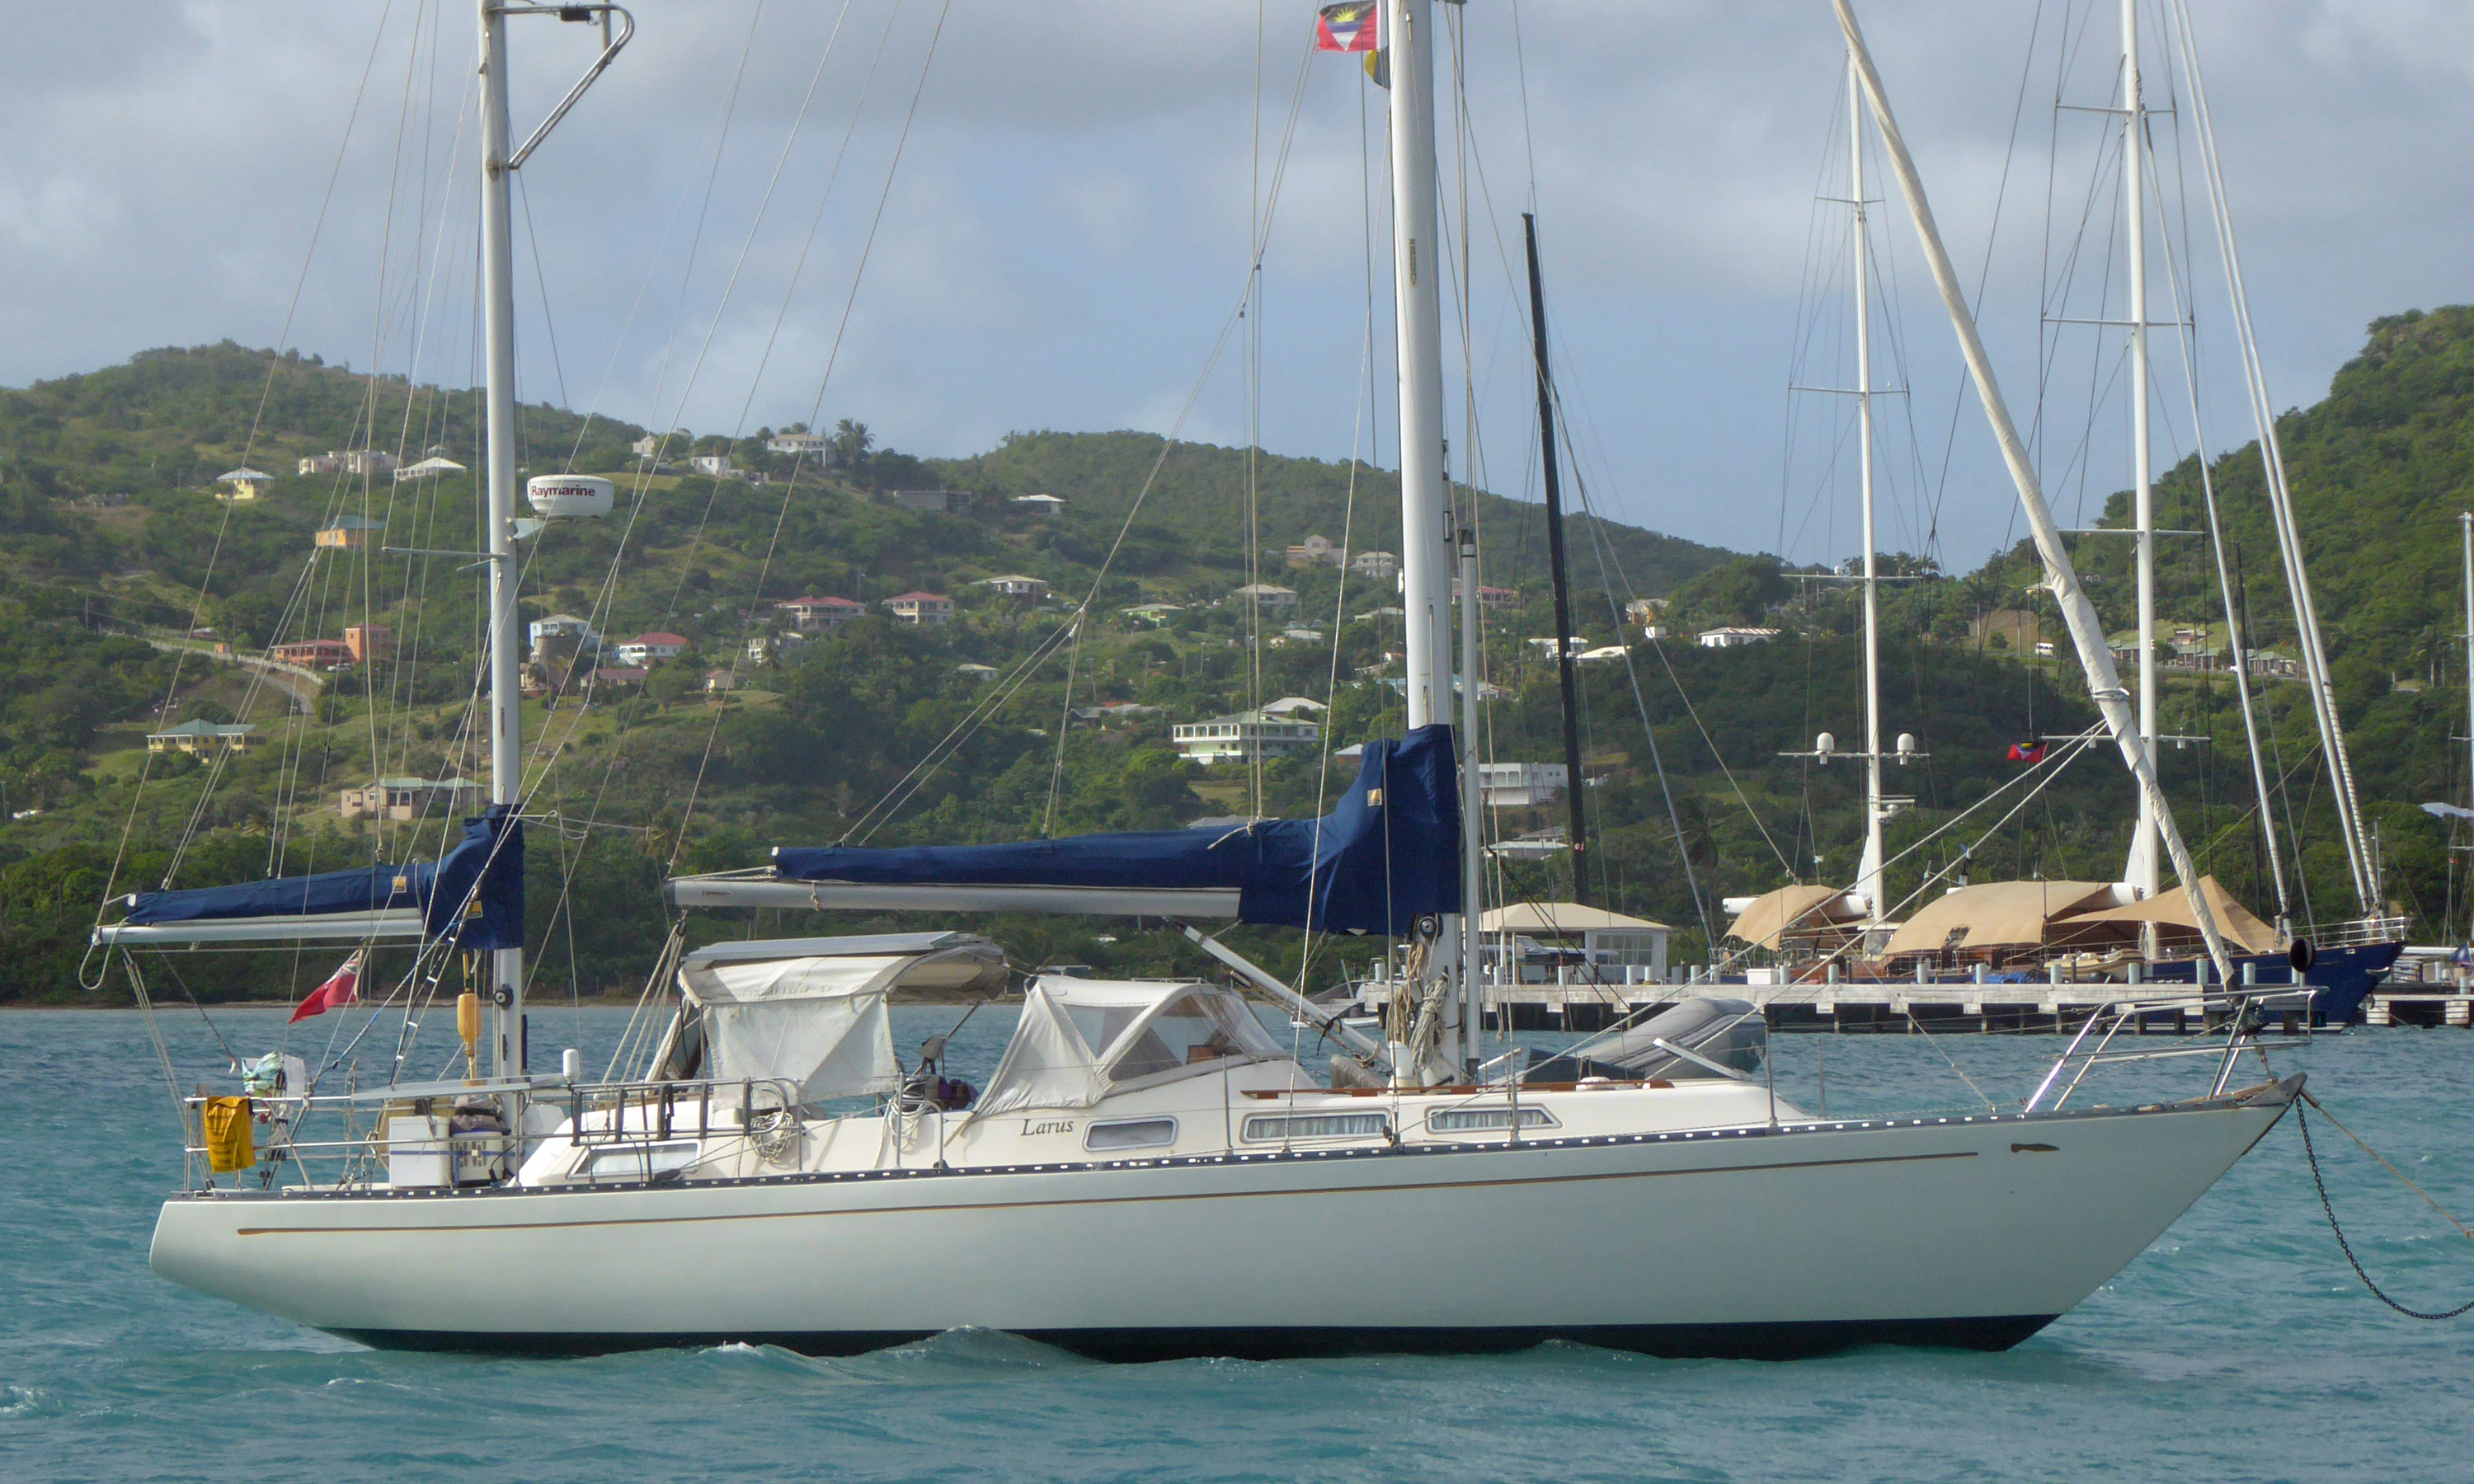 A Slipper 42 sailboat